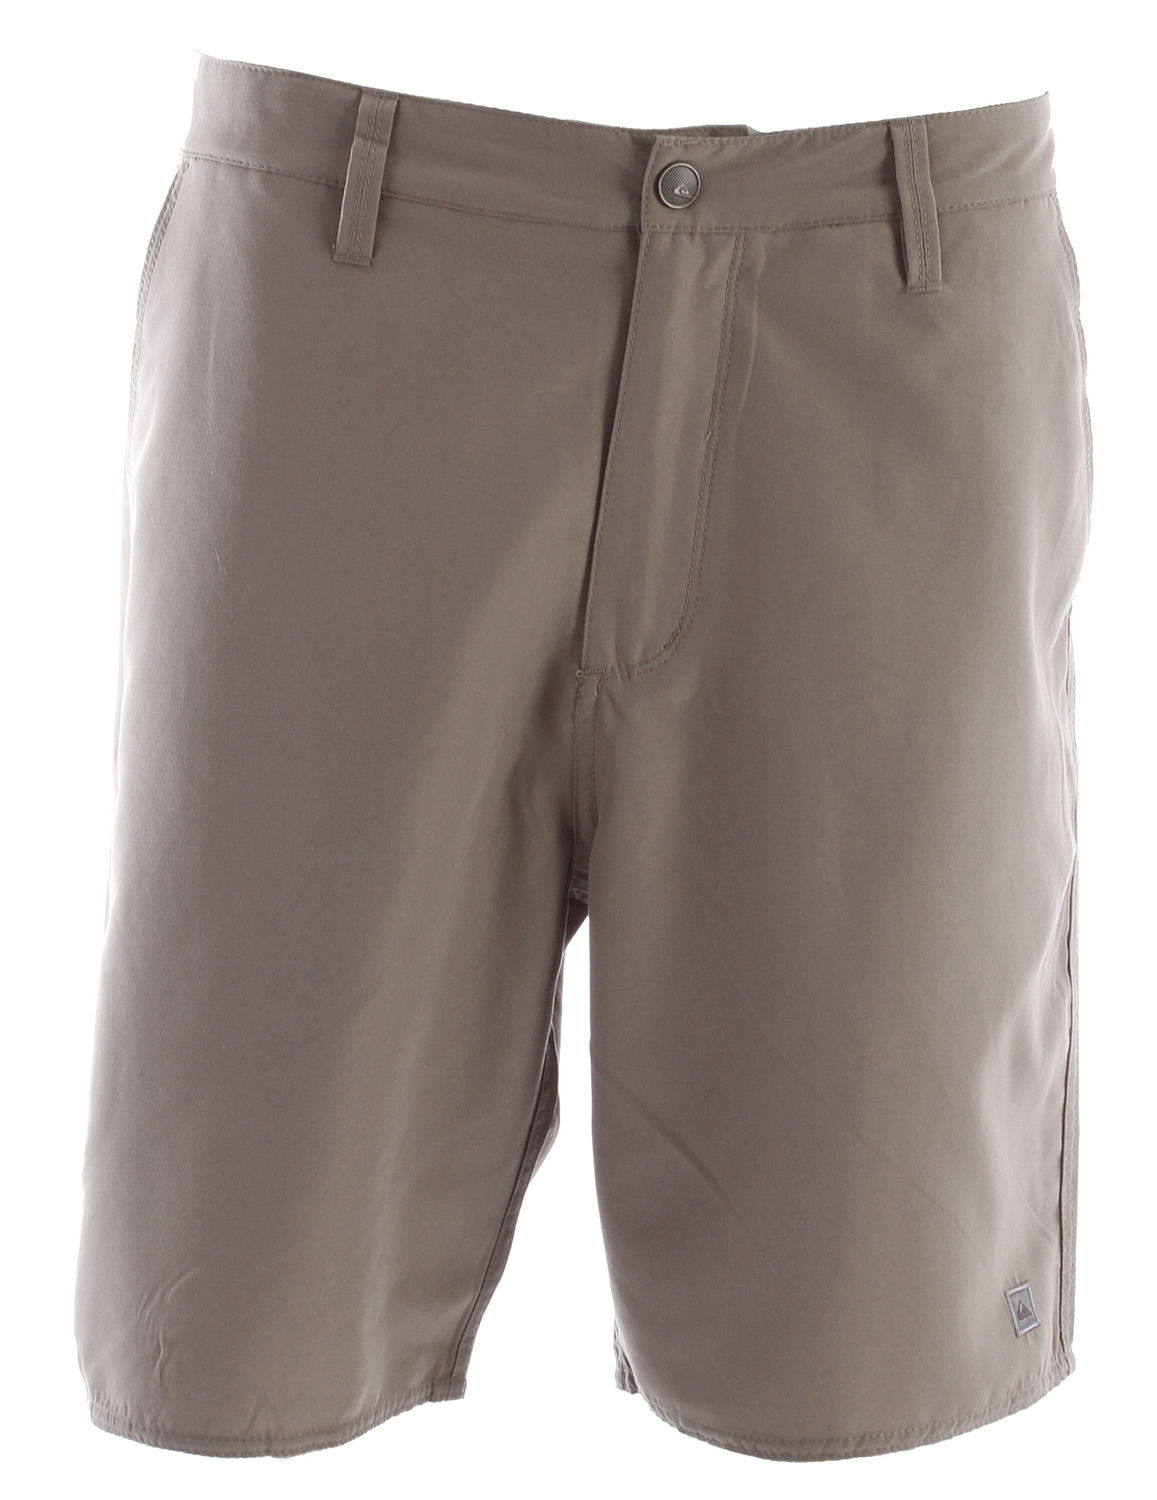 "Surf Key Features of the Quiksilver Huntington Beach 3 Shorts: Fixed waist boardwalk with snap closure, side entry, coin, cell phone and back welt pockets 100% polyester light weight dynasuede regular fit 9"" inseam - $38.95"